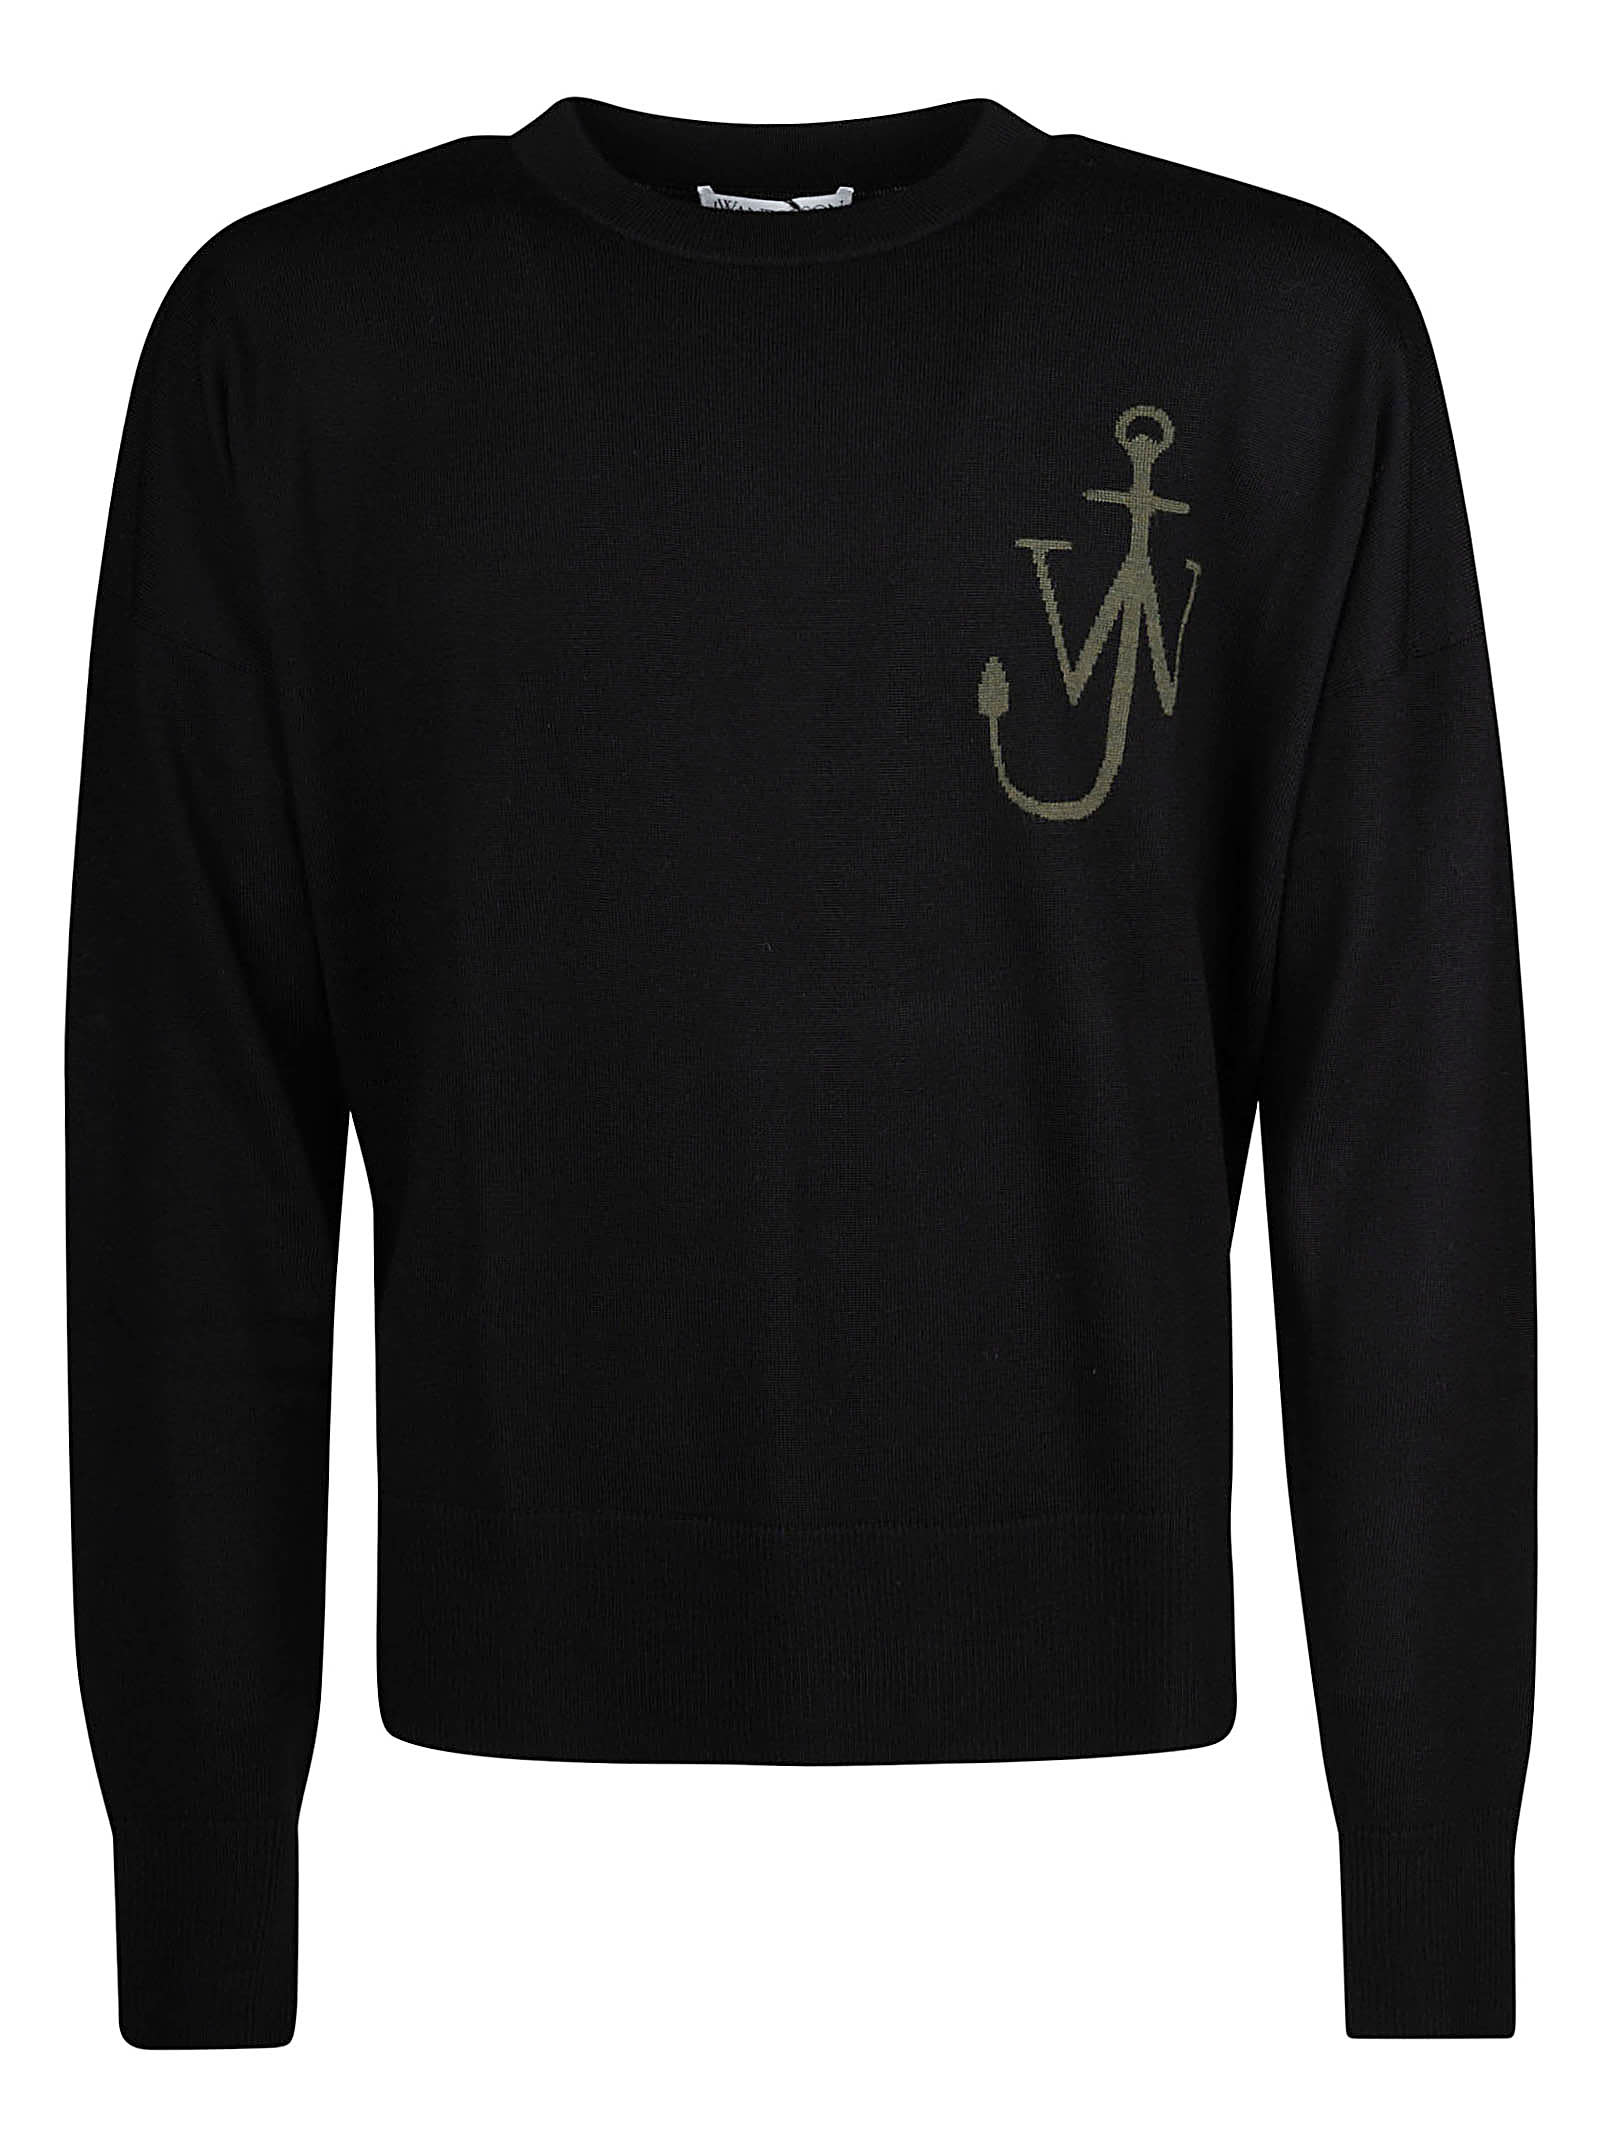 J.W. Anderson Anchor Crewneck Jumper